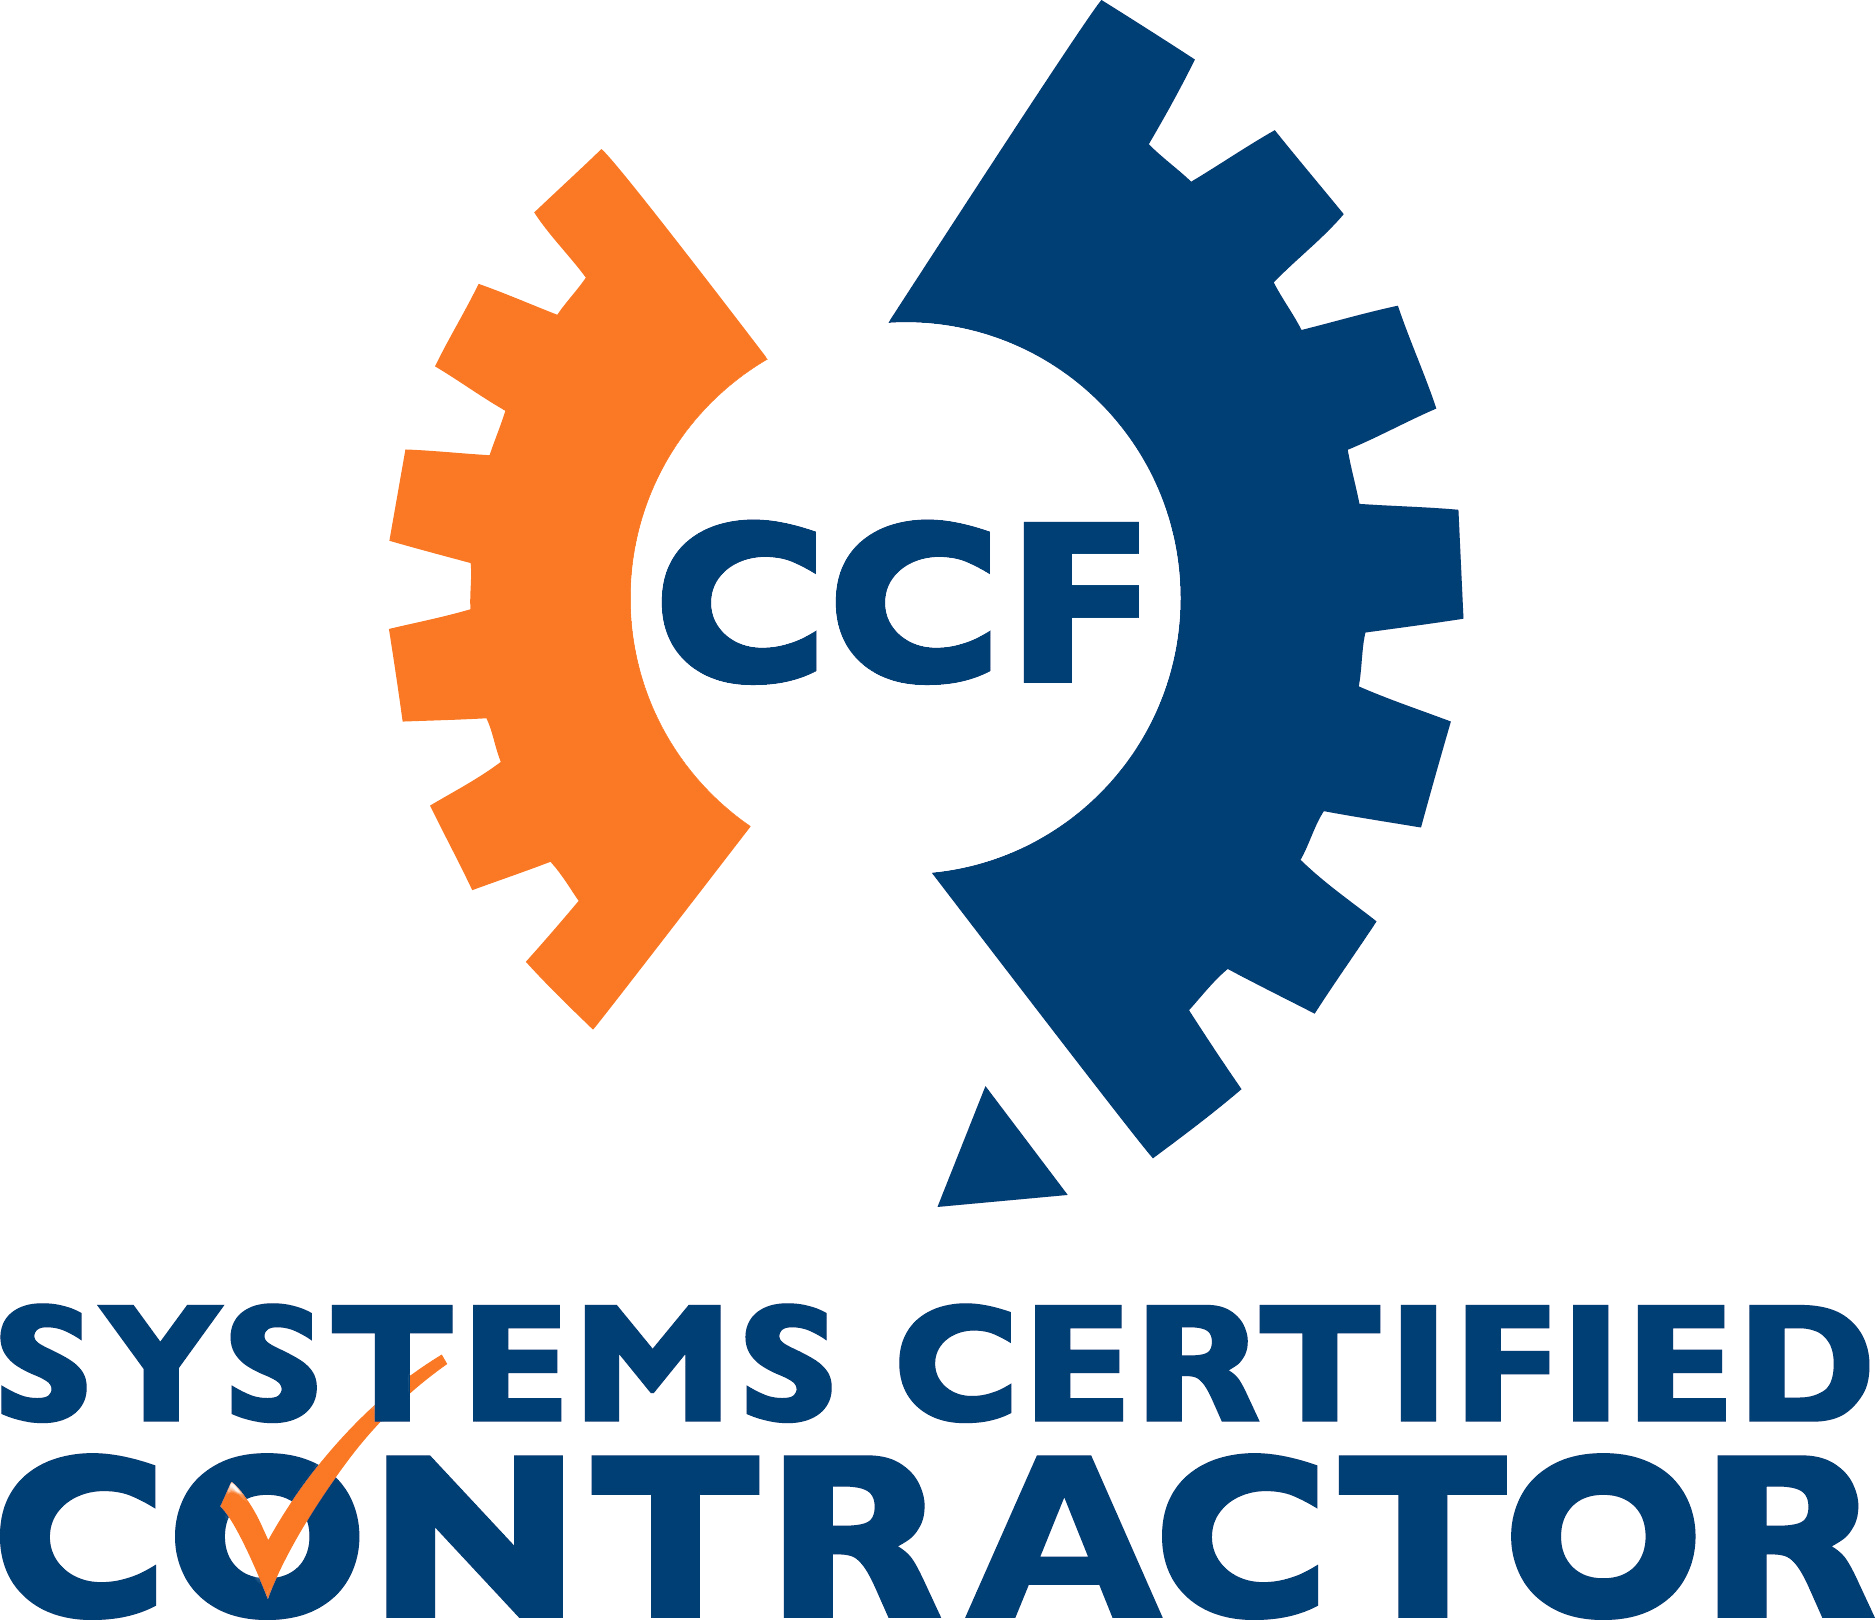 CCF Systems Certified Contractor